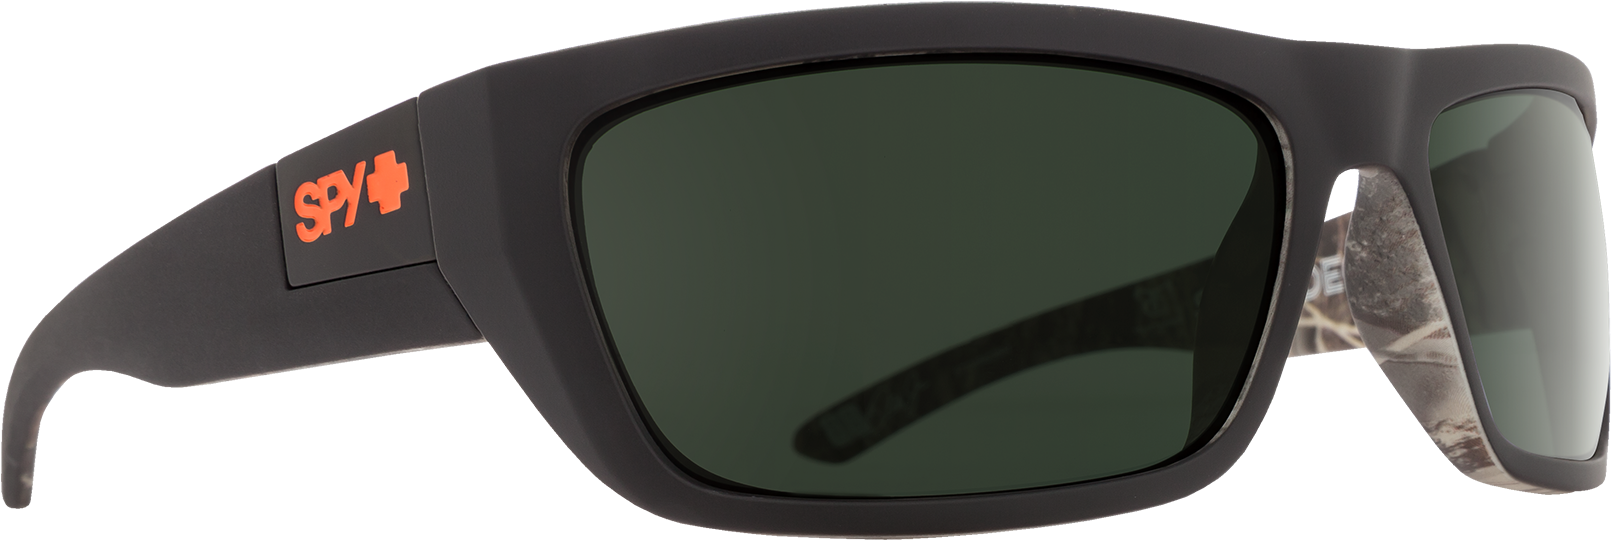 23925dc1ba Download Dega - Spy Dega Sunglasses - Full Size PNG Image - PNGkit